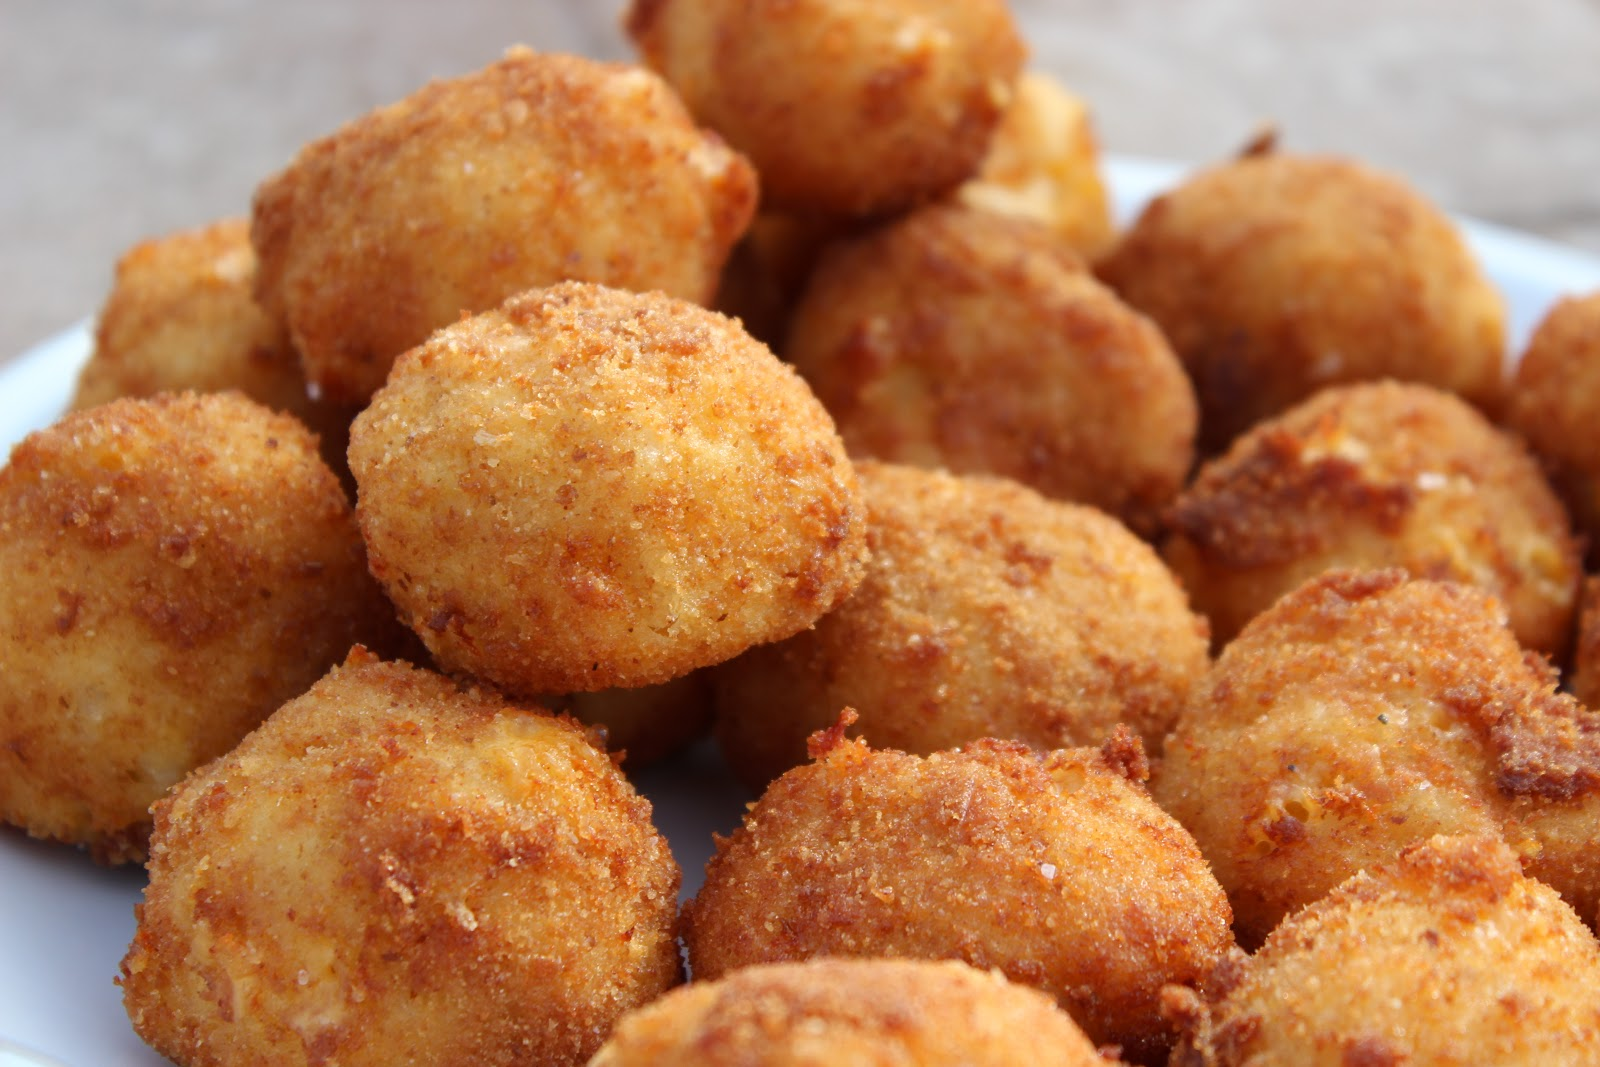 ... hubby made these AMAZING Fried Mac and Cheese Balls for Super Bowl